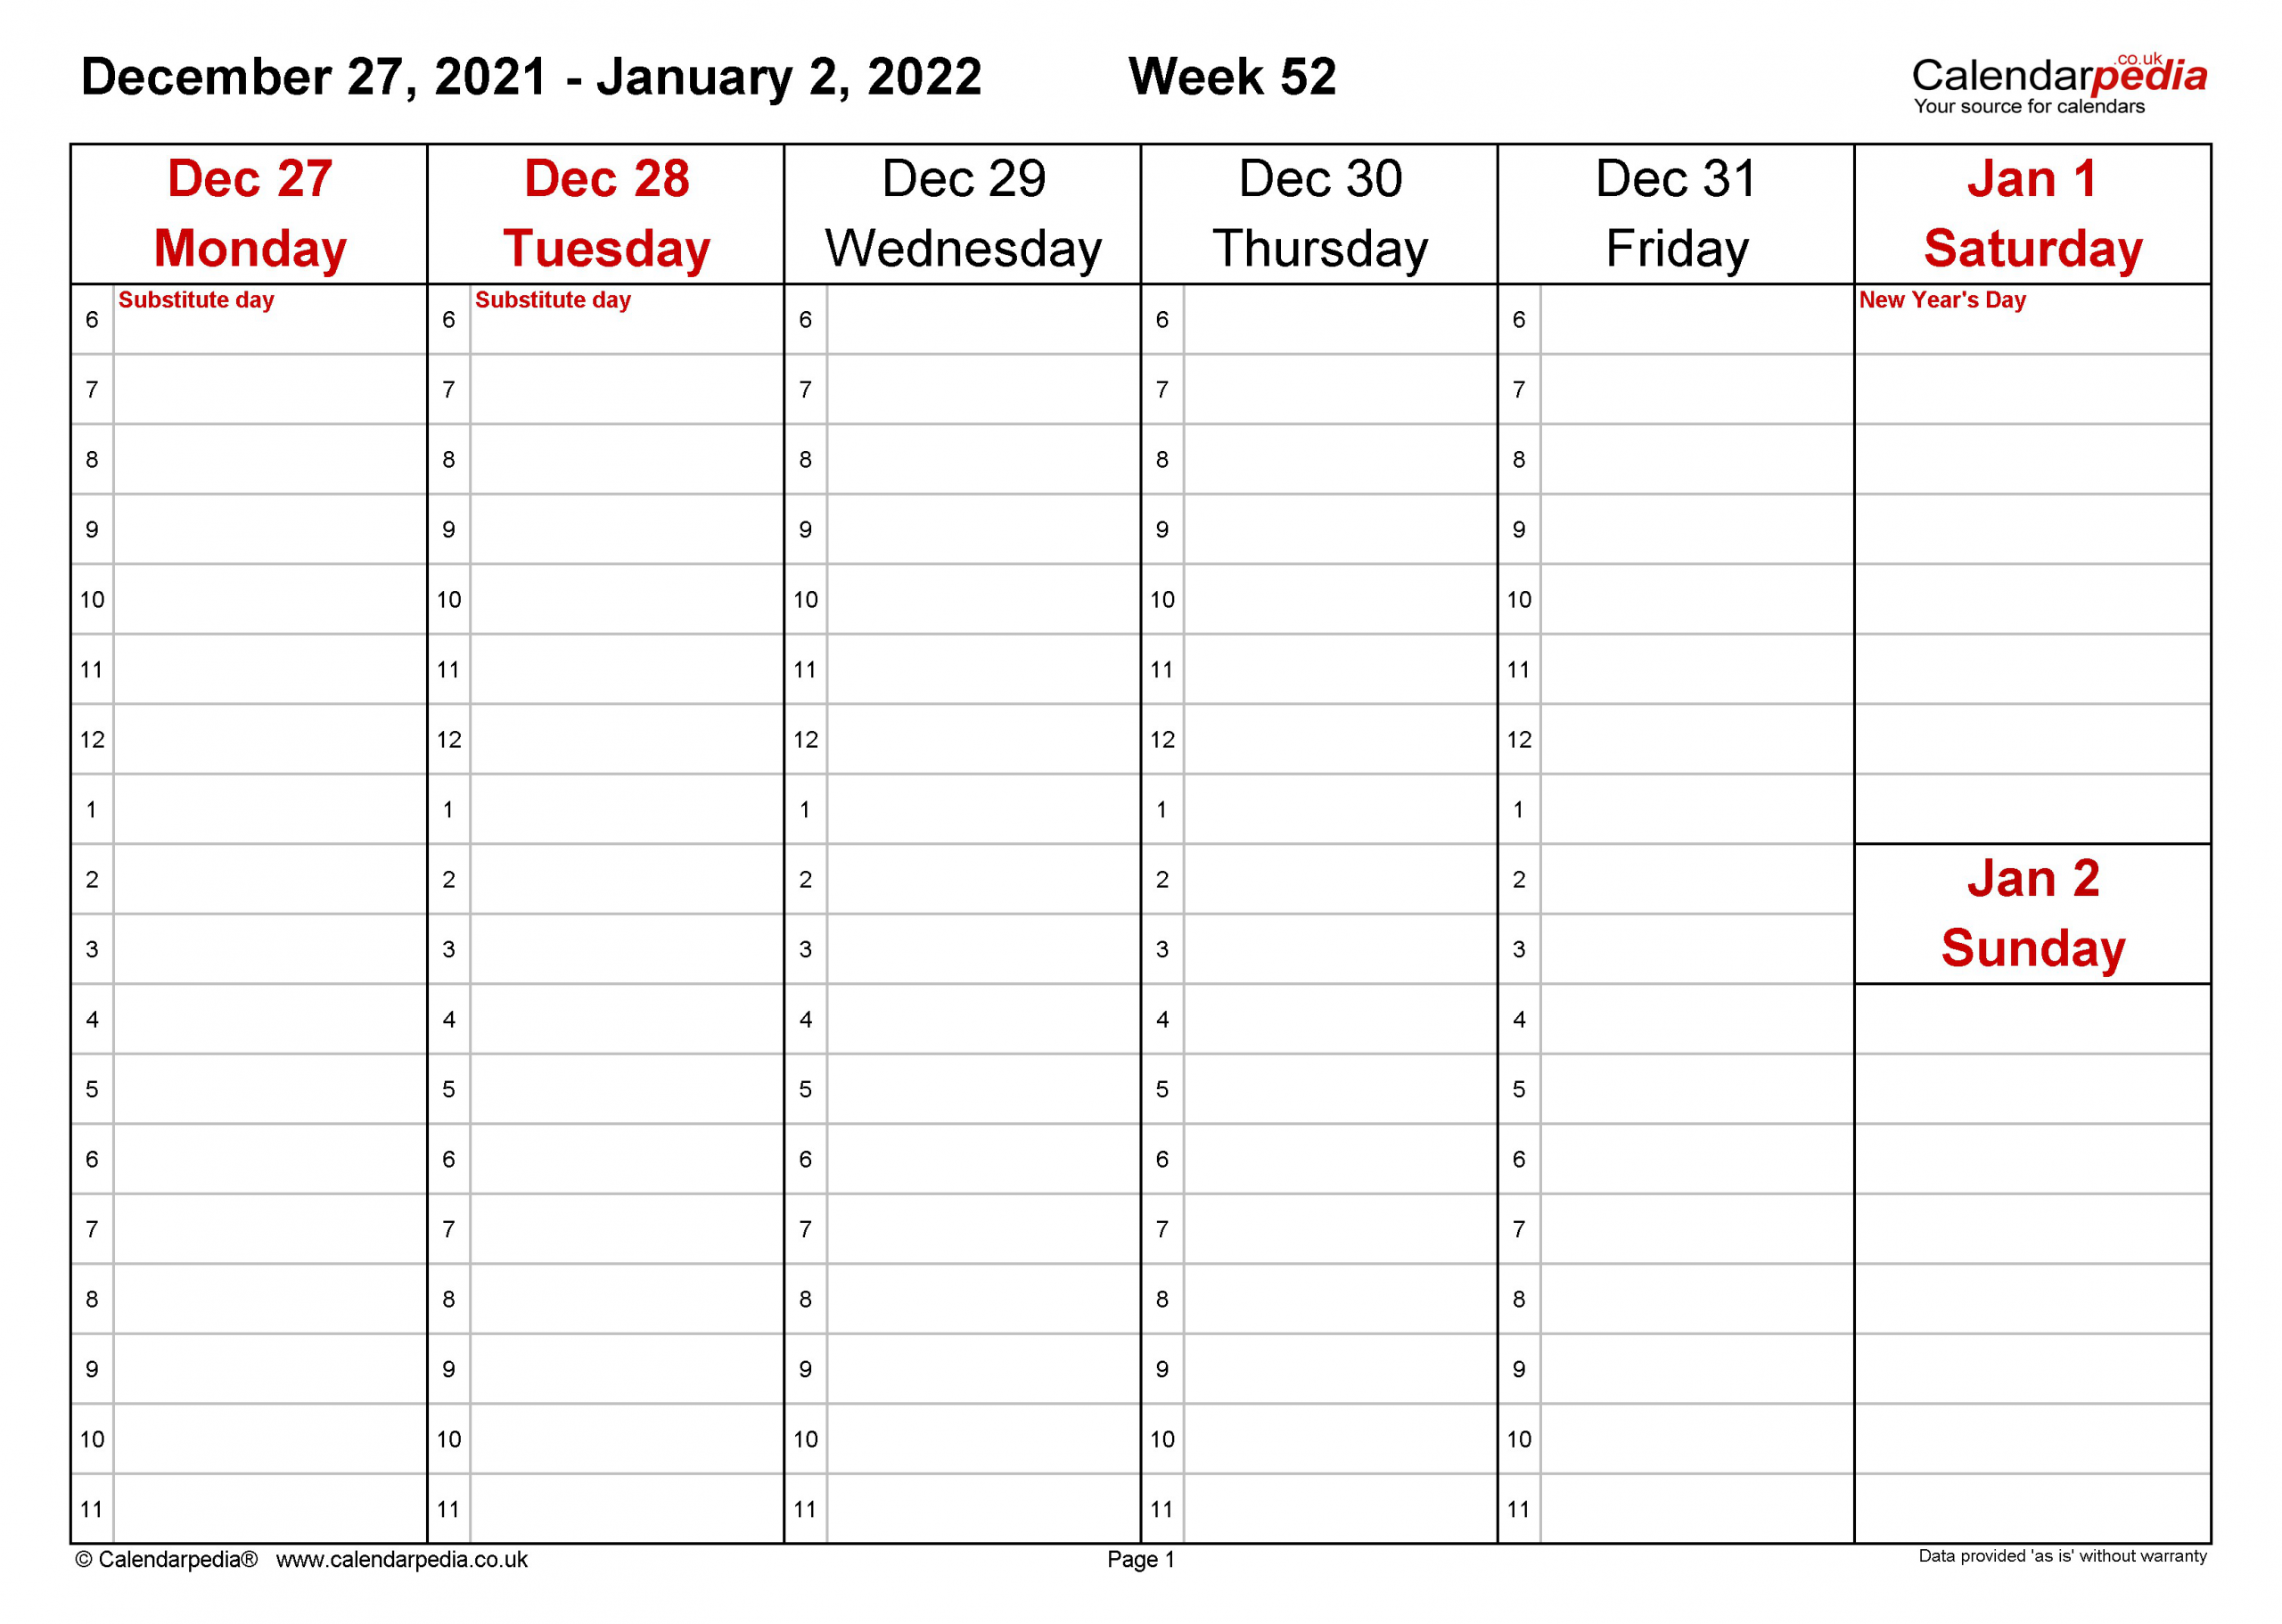 Weekly Calendar 2022 Uk Free Printable Templates For Excel Weekly Calendar 2021 Uk Free Printable Templates For Excel 2021